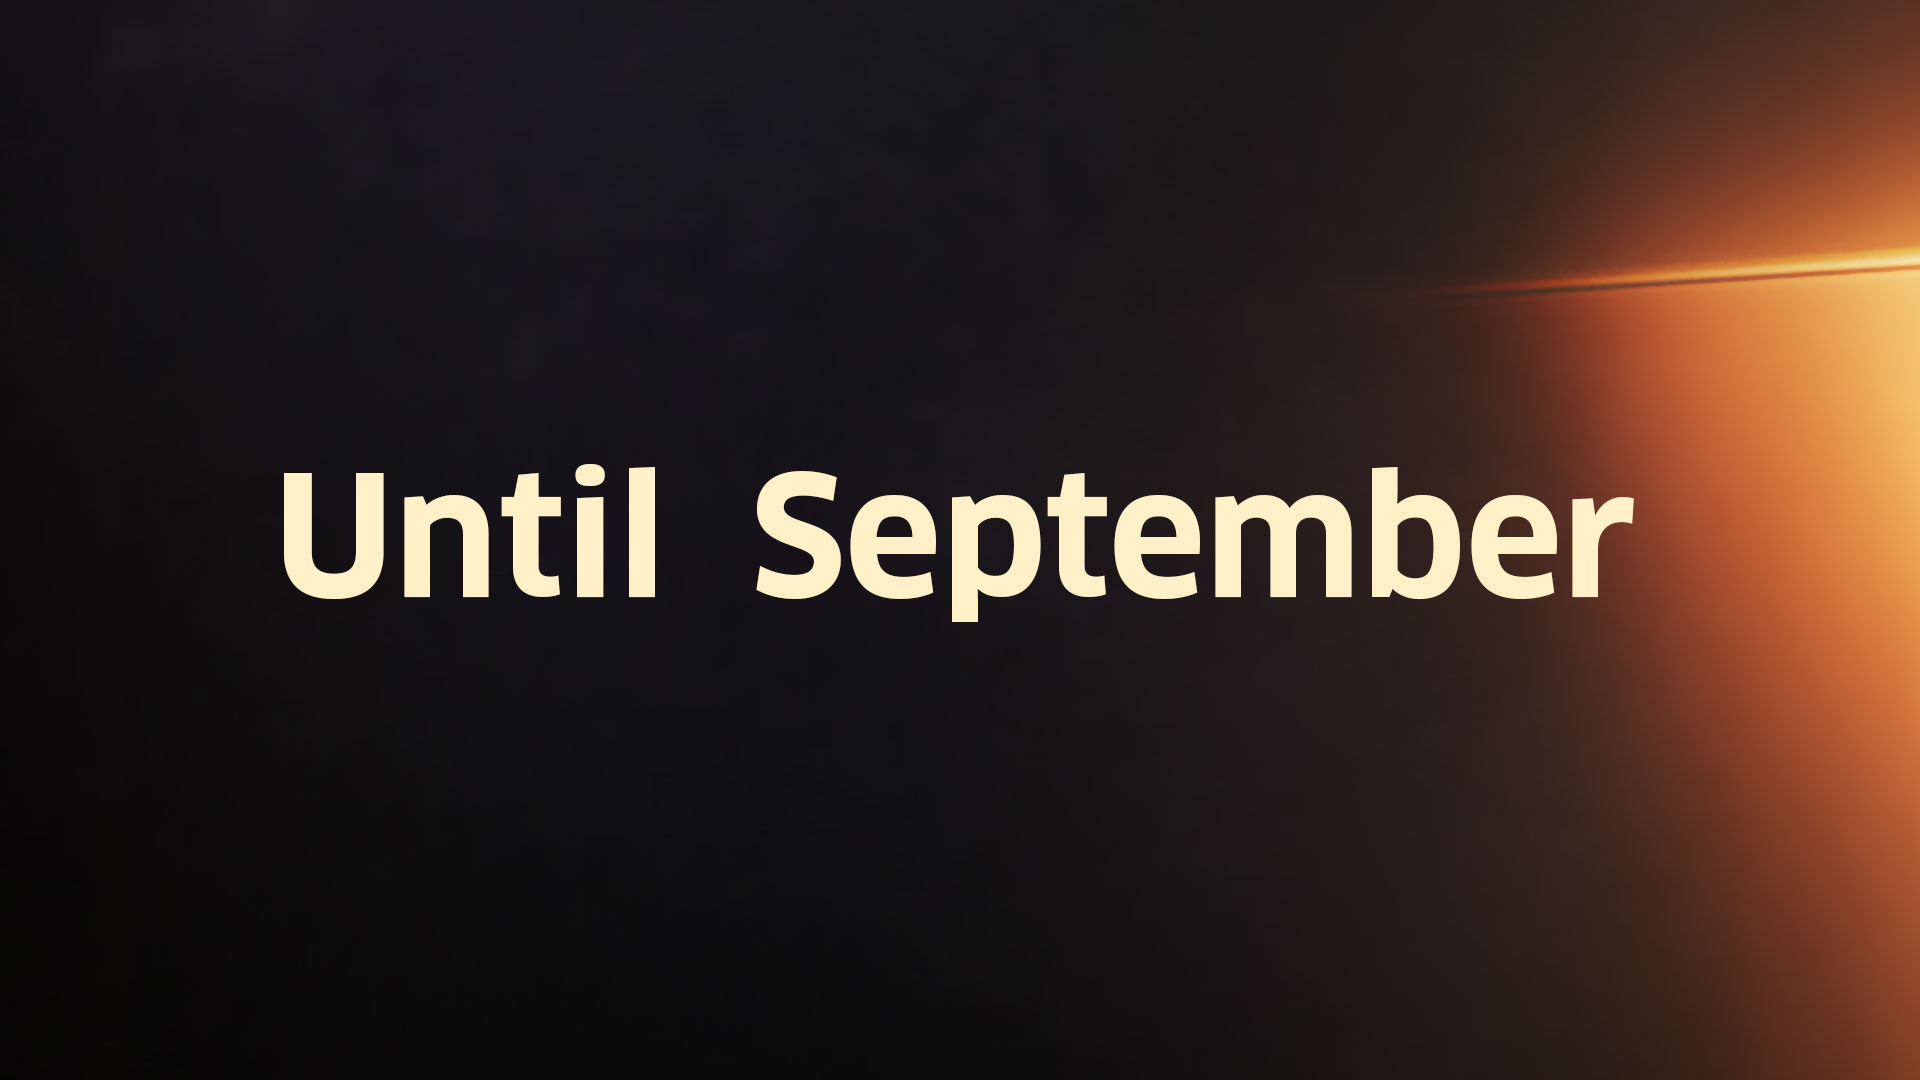 Until September